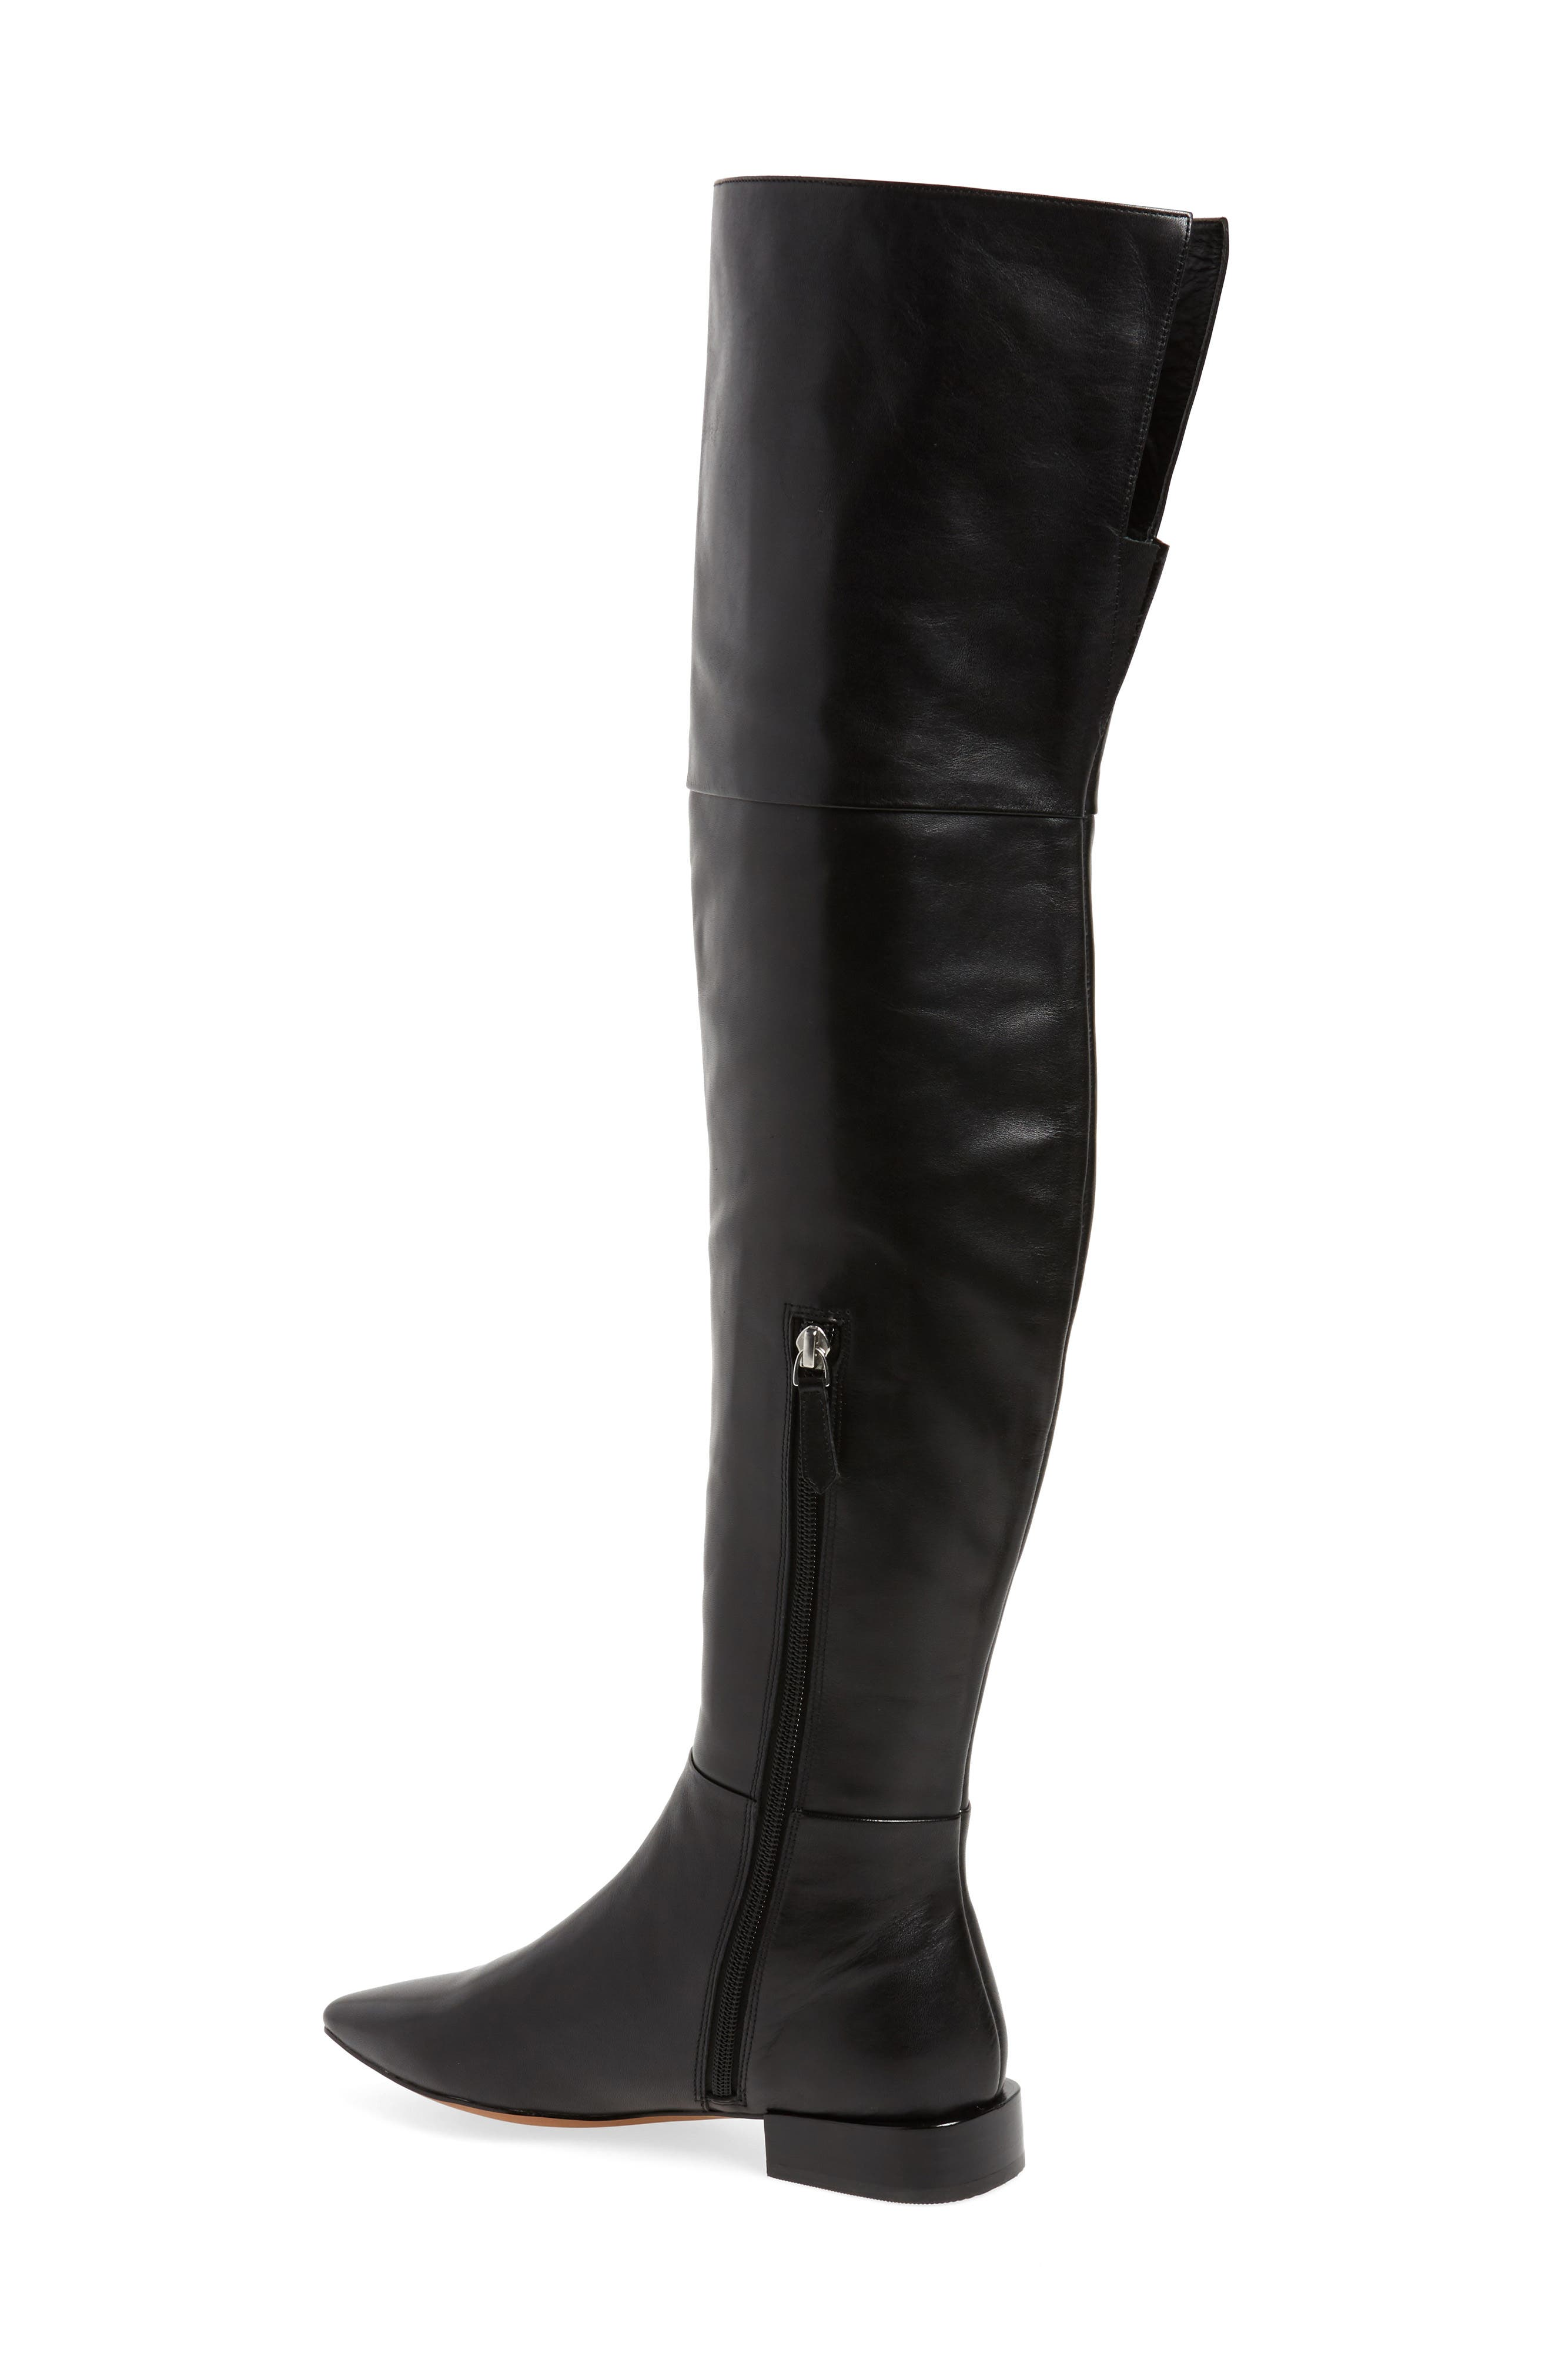 Kiki Over the Knee Boot,                             Alternate thumbnail 2, color,                             Black Leather